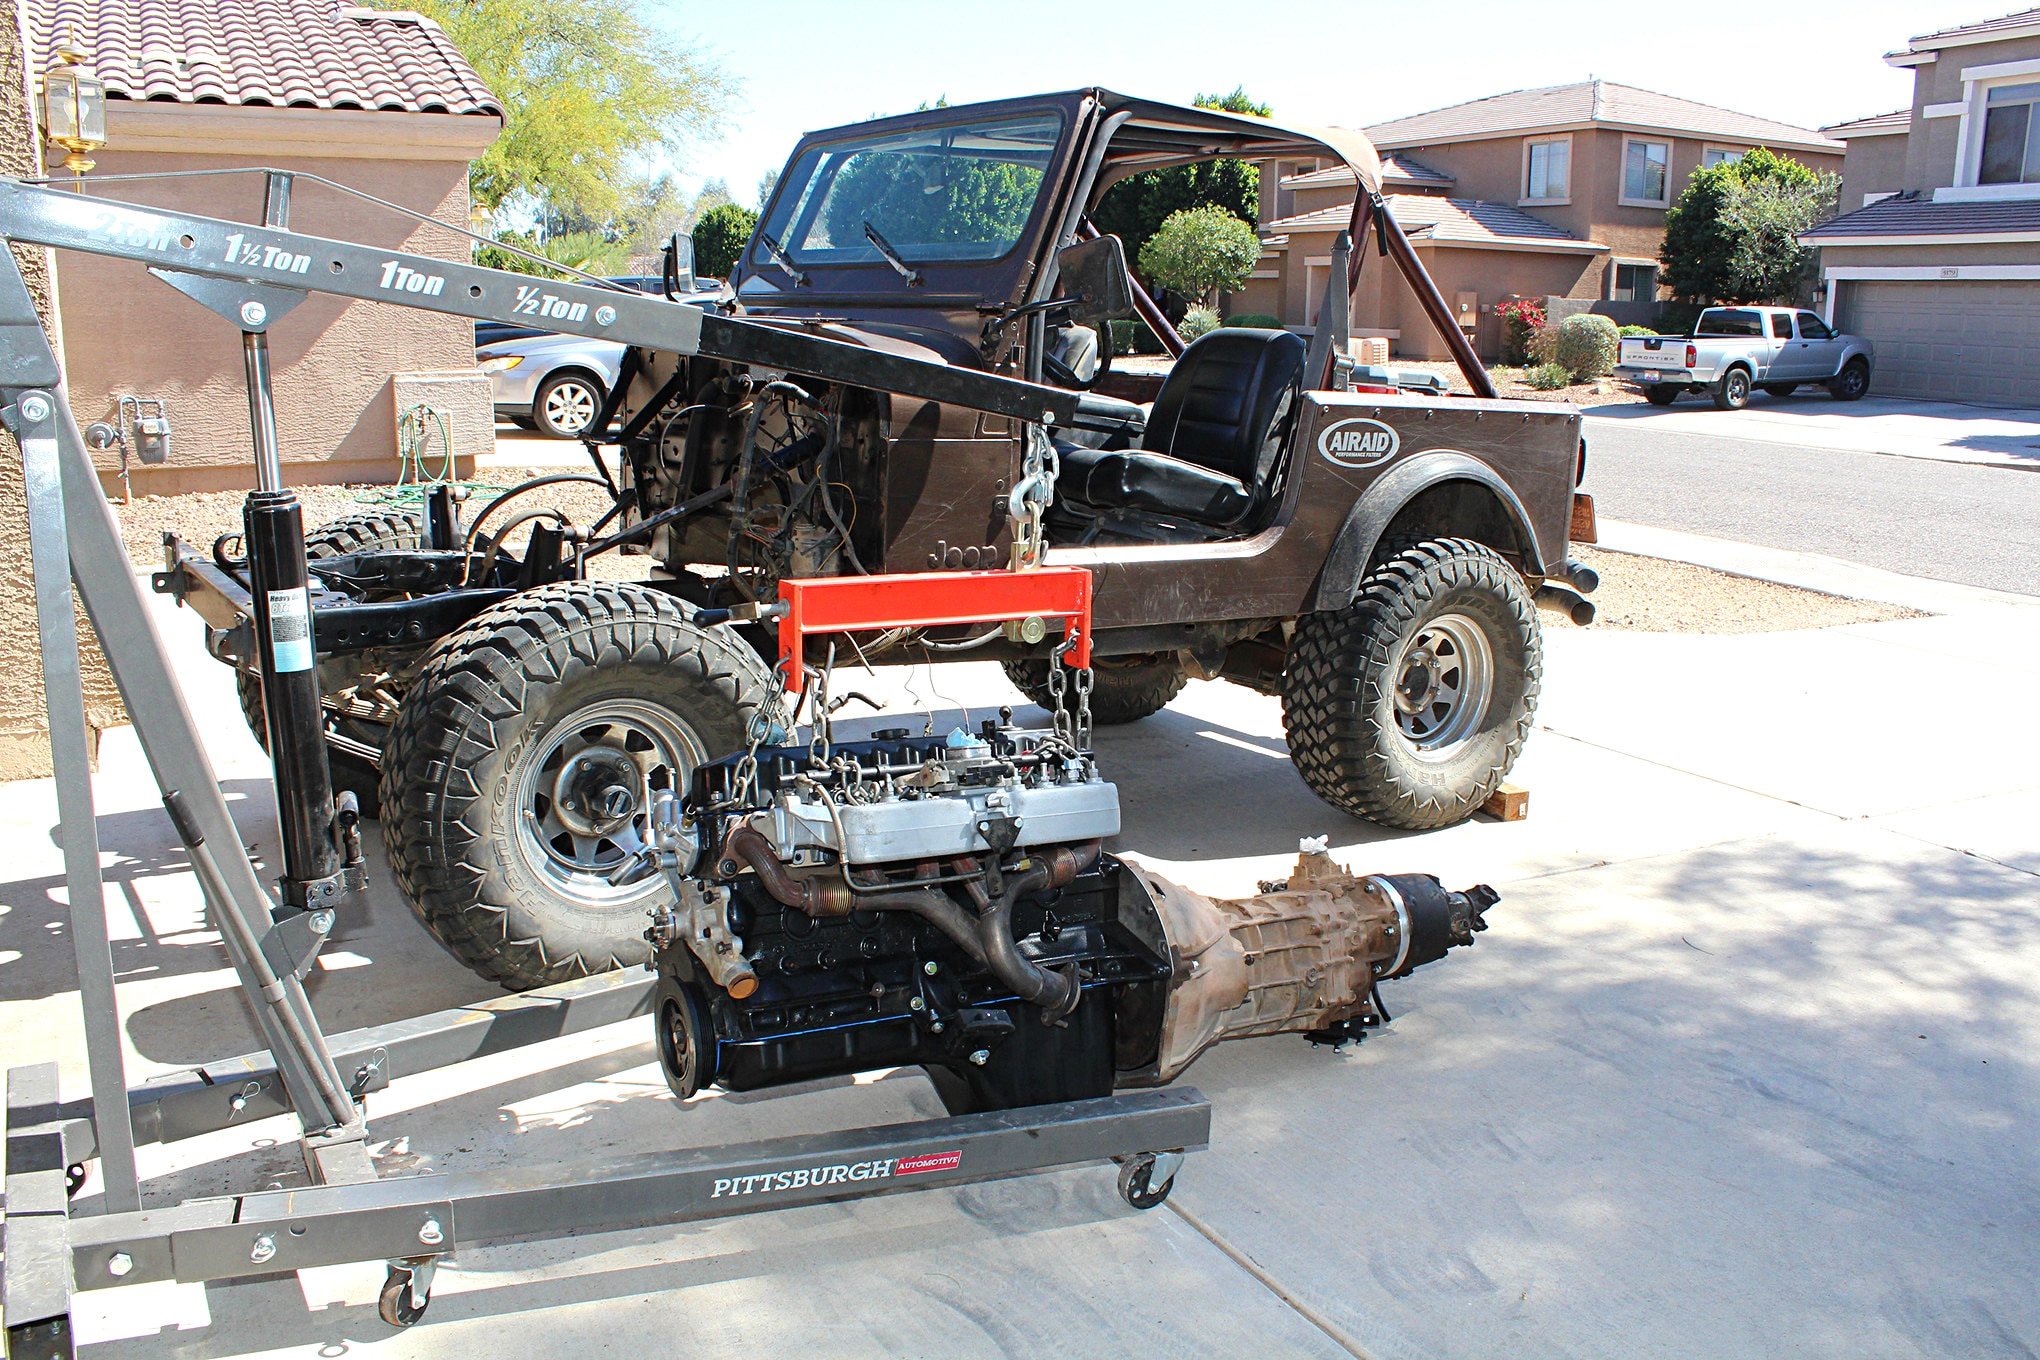 Jeep 4 0 Wiring Harness Swap - Wiring Diagram K10 Jeep Fuel Injection Wiring Harness on